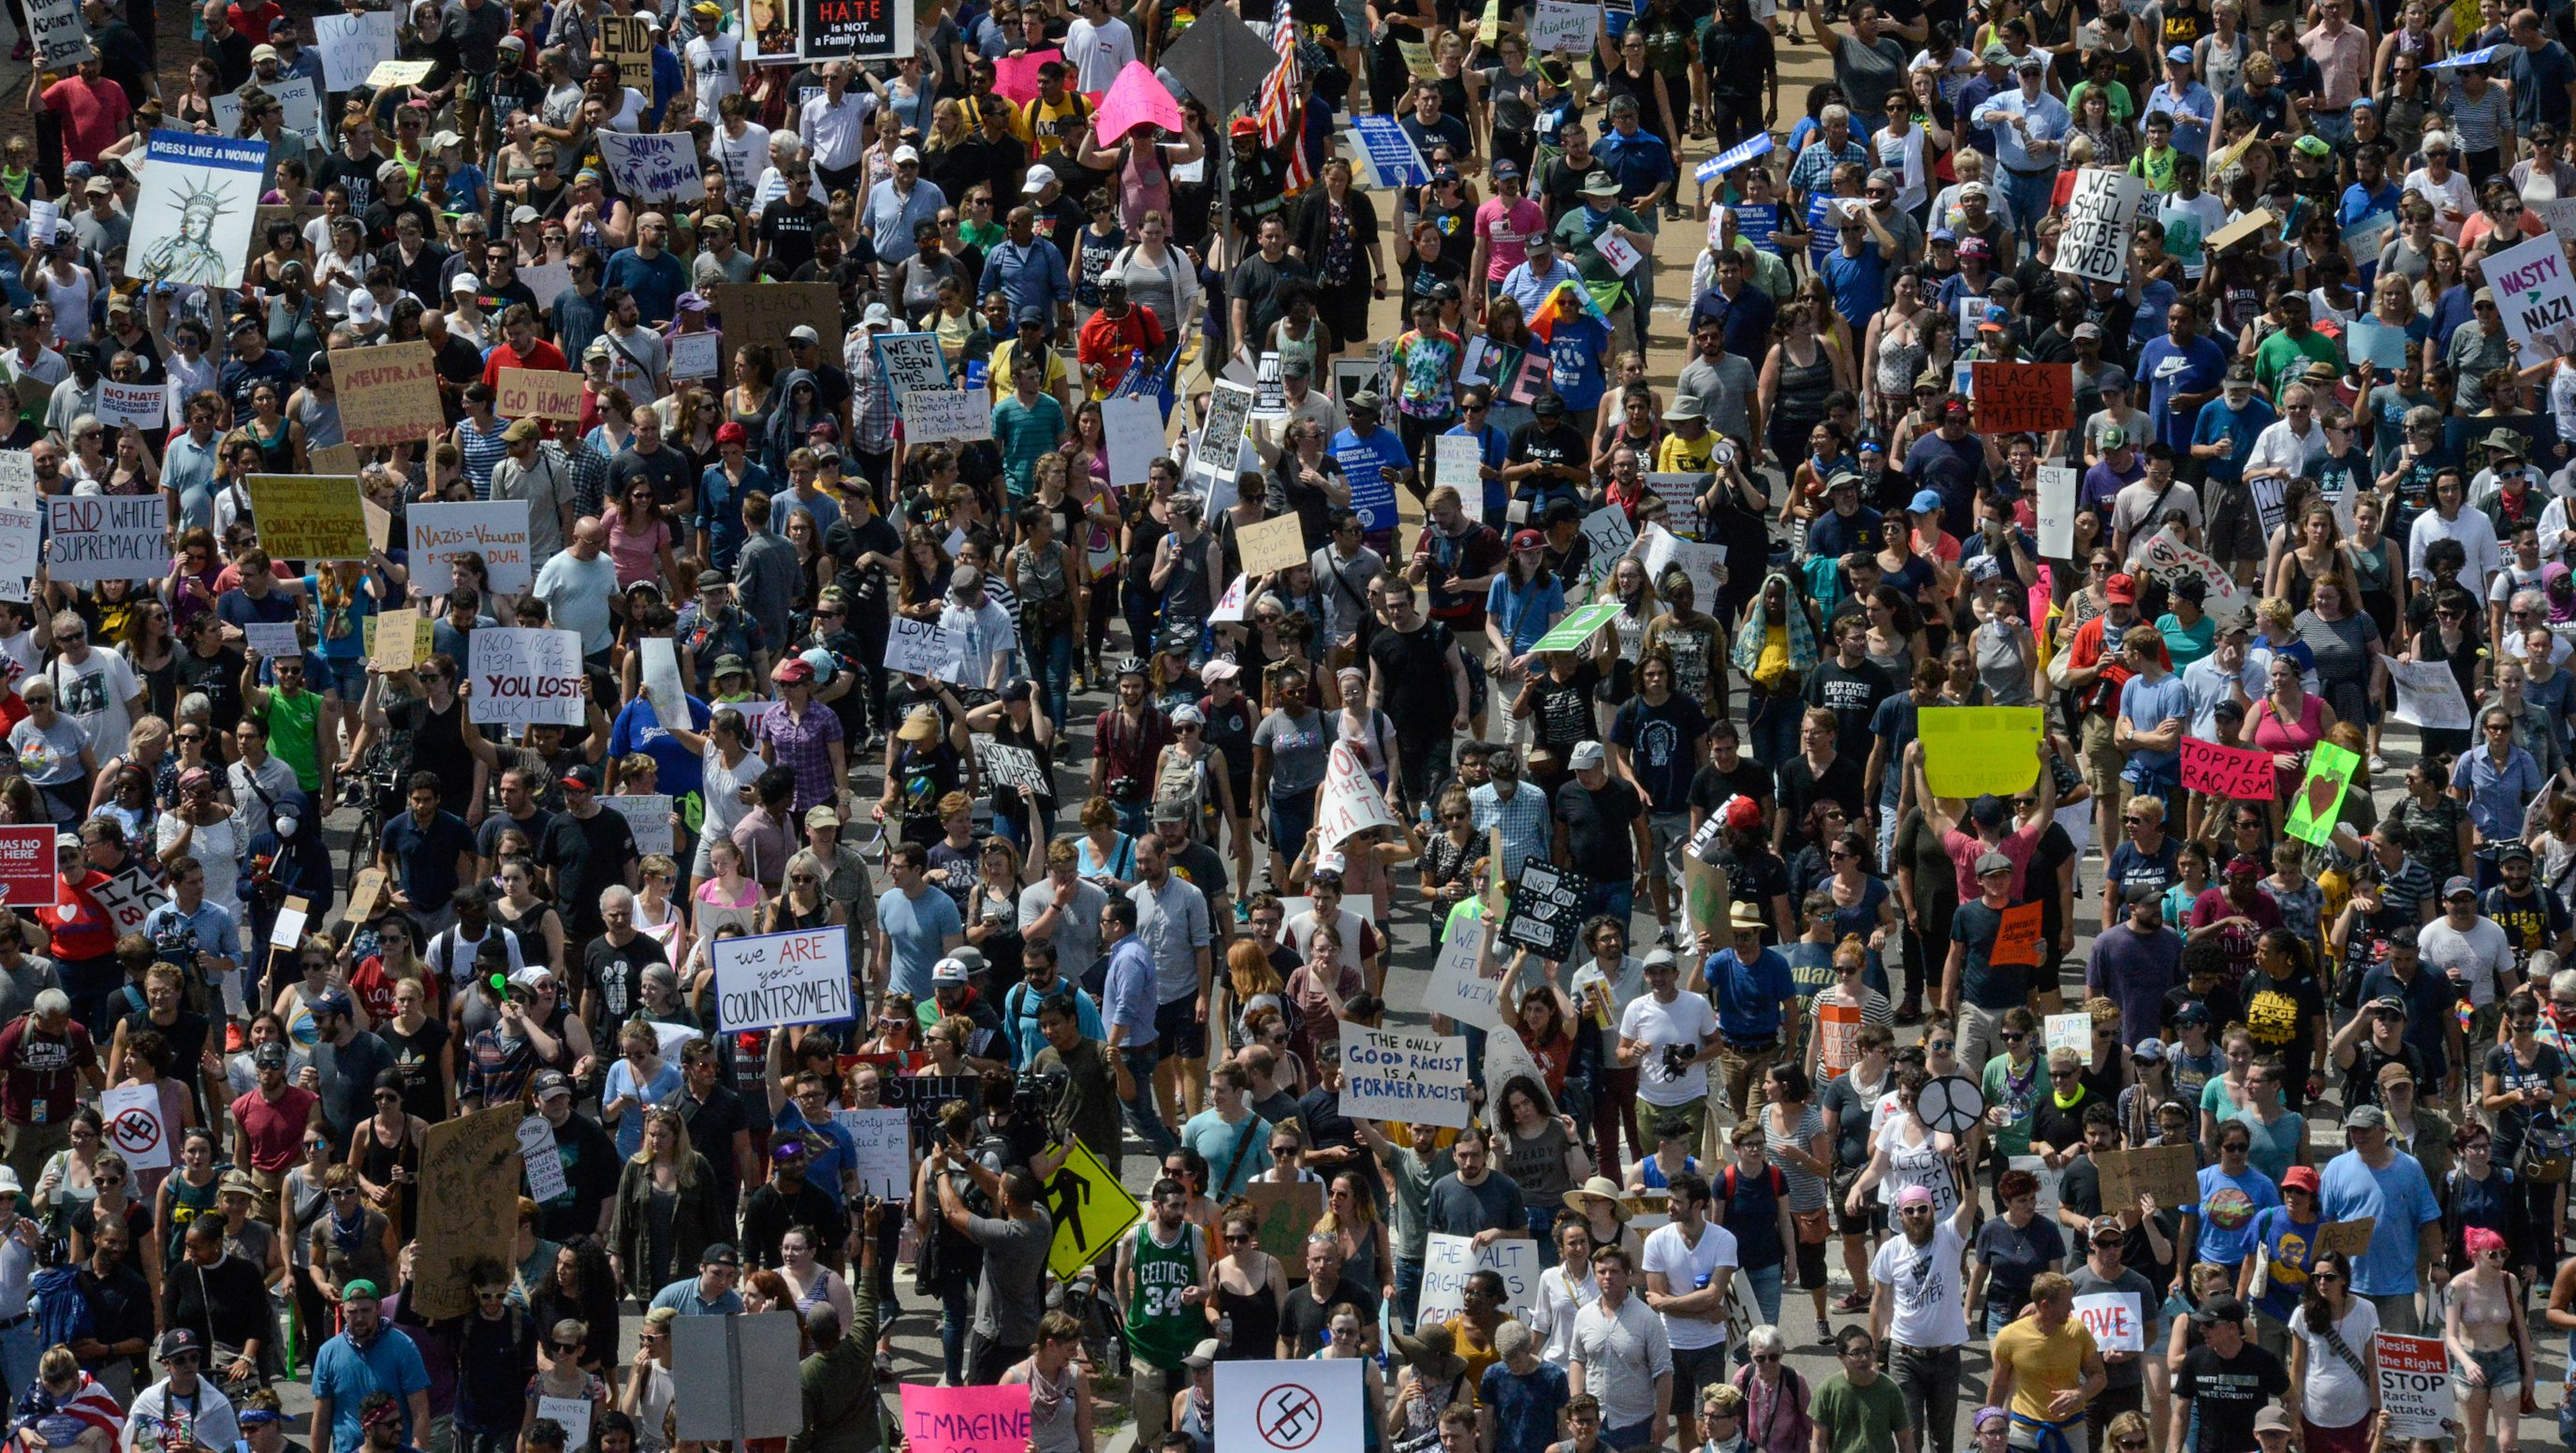 A large crowd of people march towards the Boston Commons to protest the Boston Free Speech Rally in Boston, MA